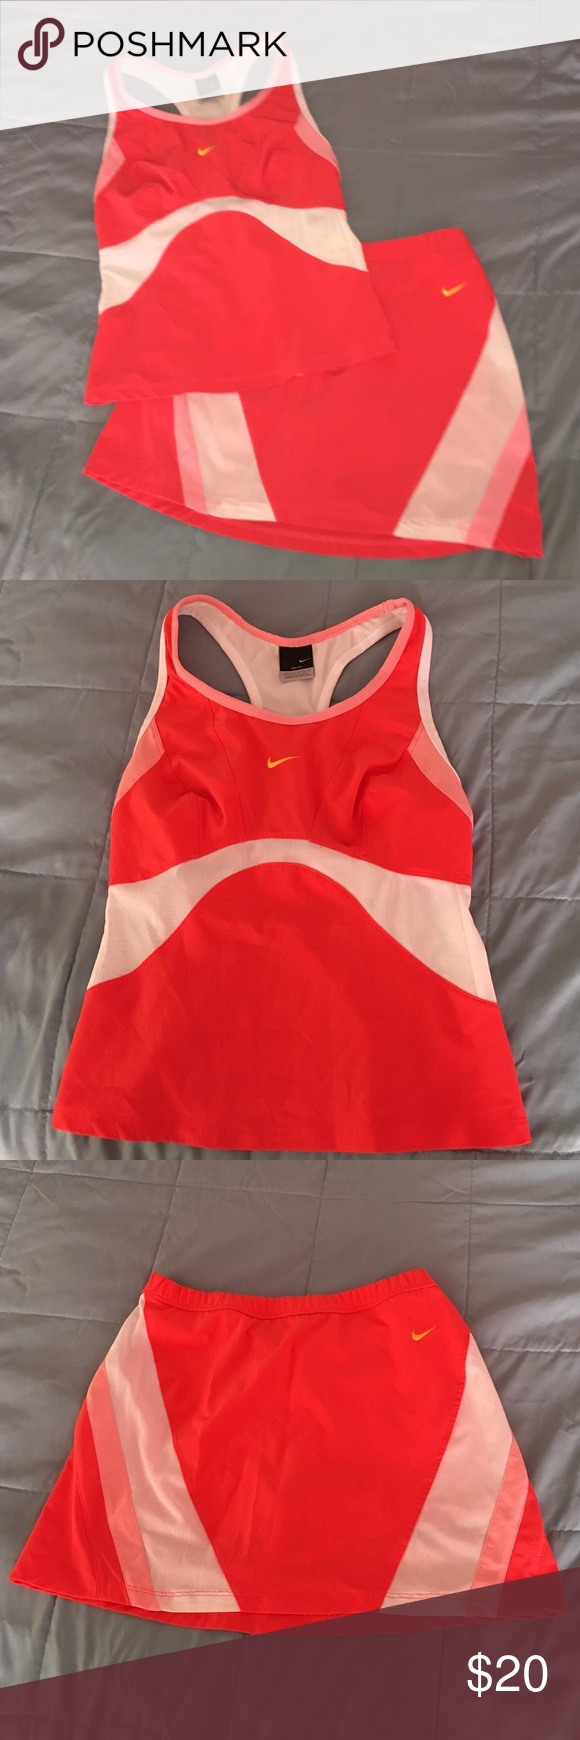 2piece Nike suit athletic size 0/2 2 piece Nike dri-fit athletic suite size 0/2 small in excellent condition bundle and save  Nike Other